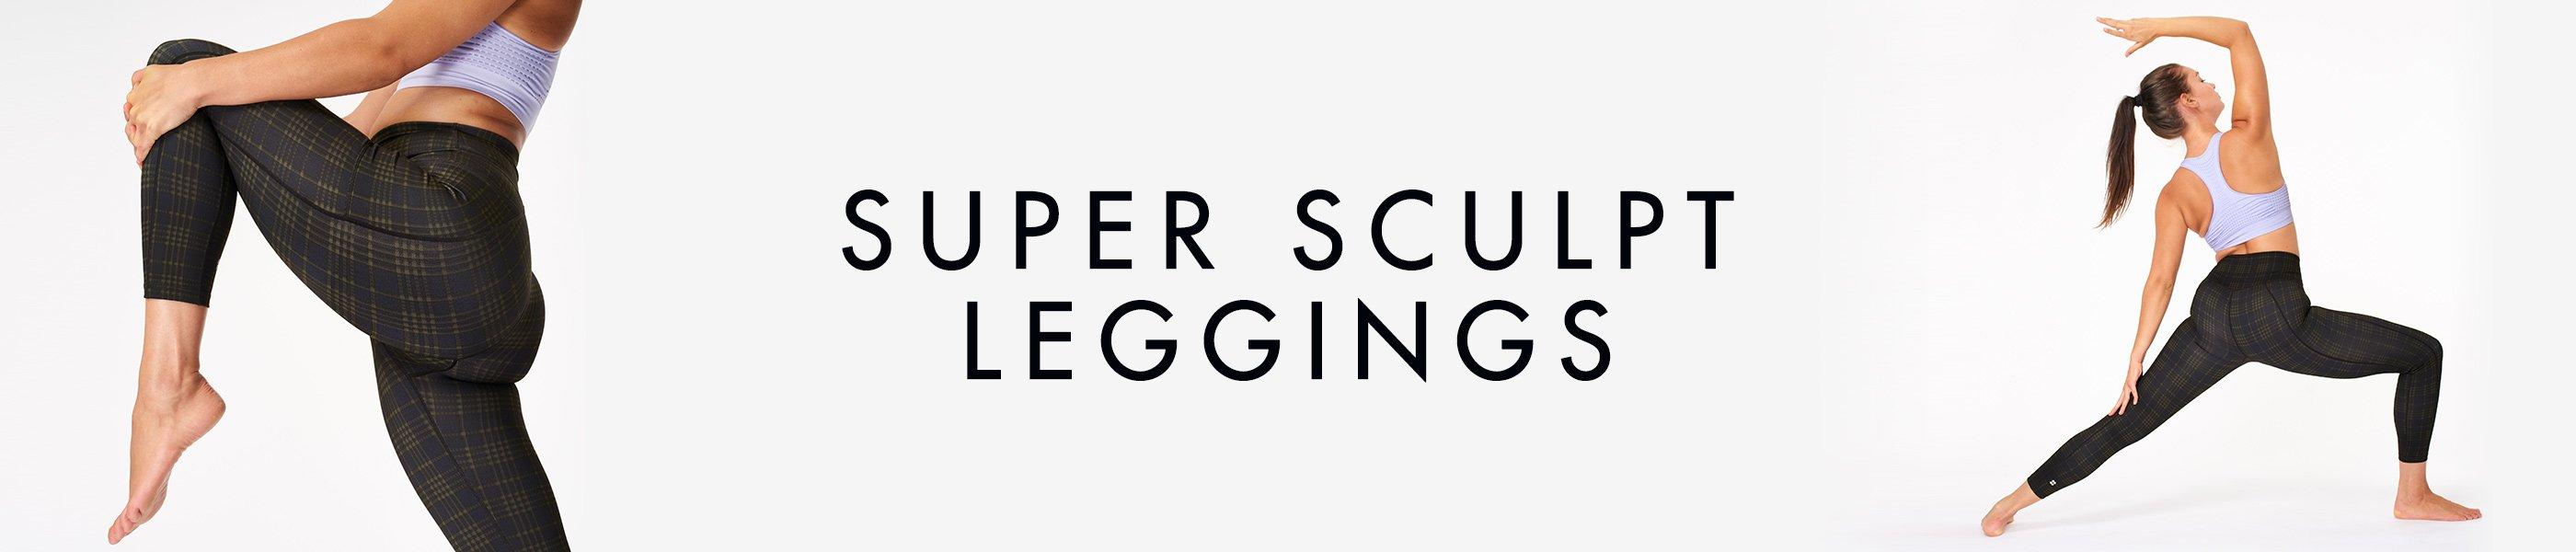 Super Sculpt Leggings